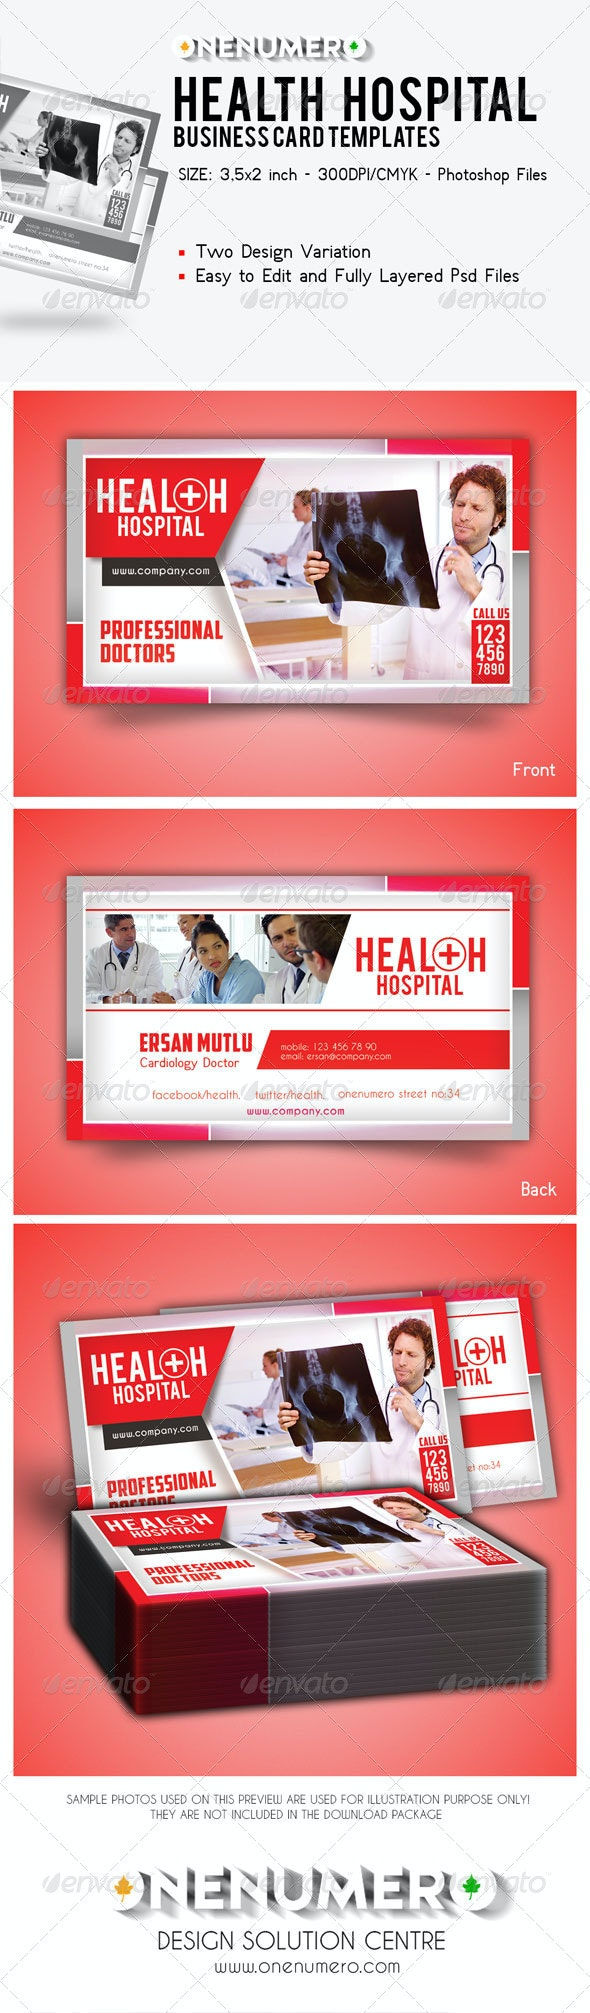 Health Hospital Business Card Templates - Corporate Business Cards